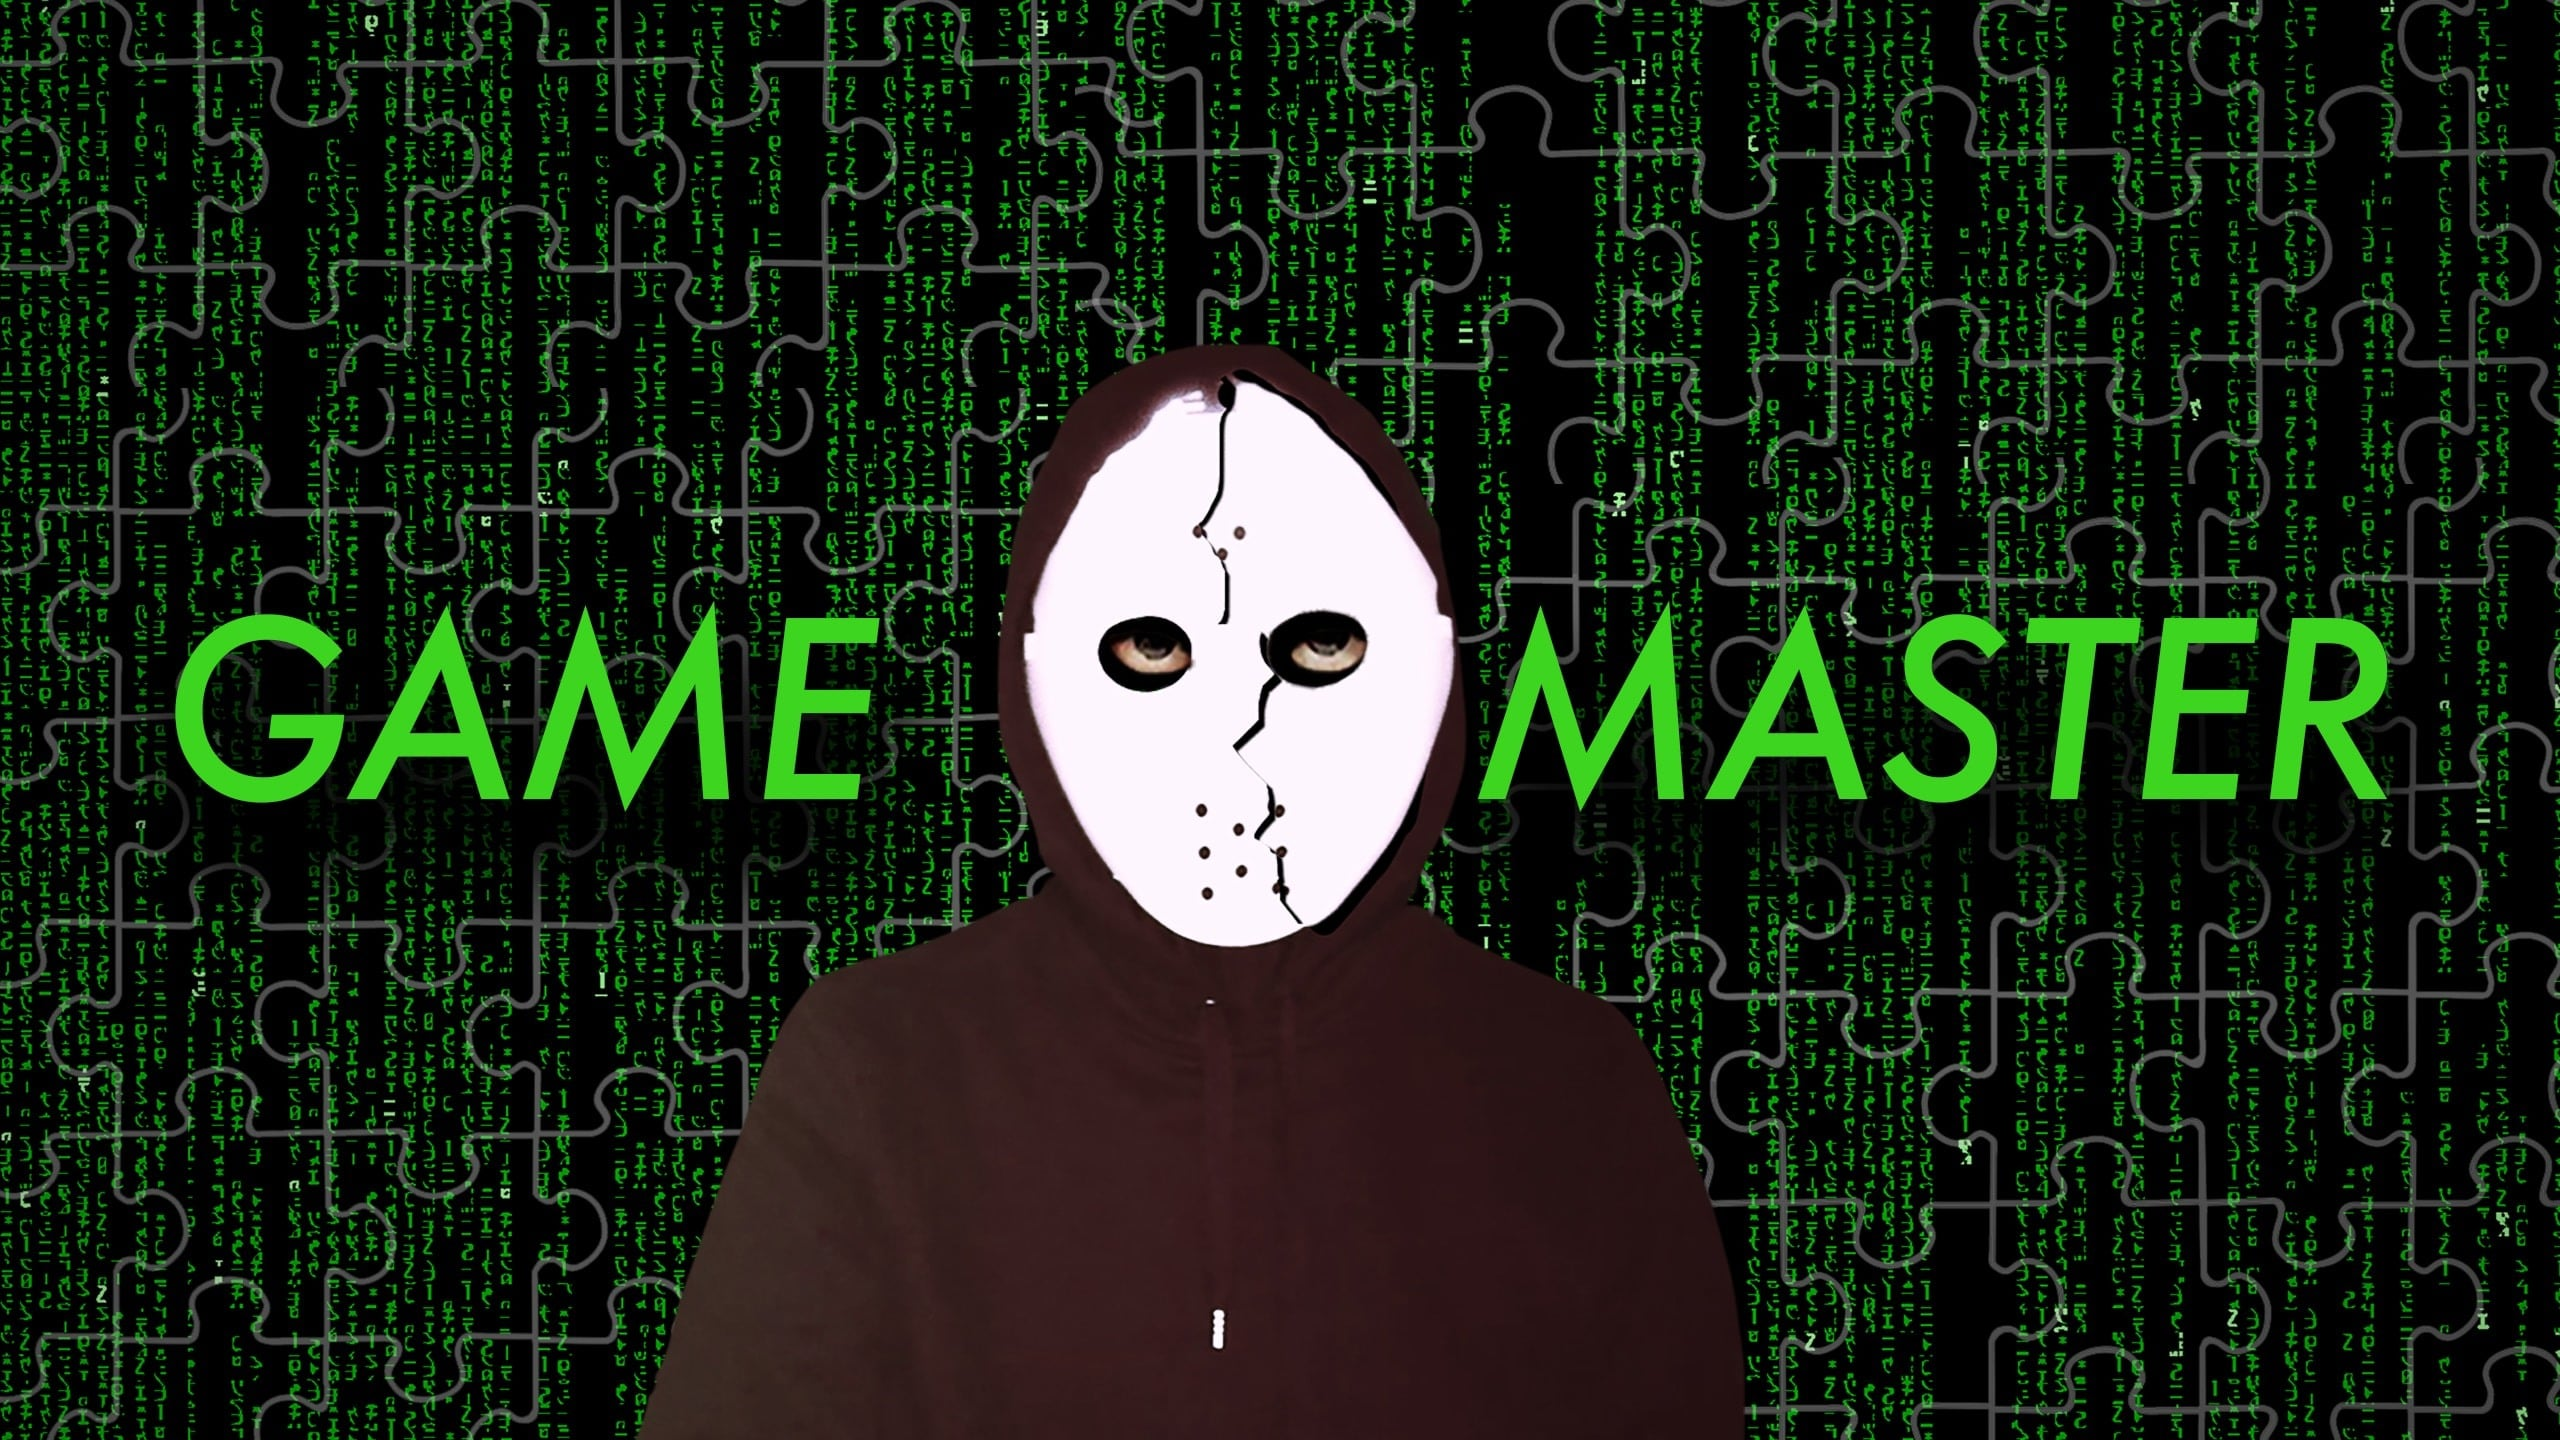 The Gamemaster Network - 24 Hours of Spy Games